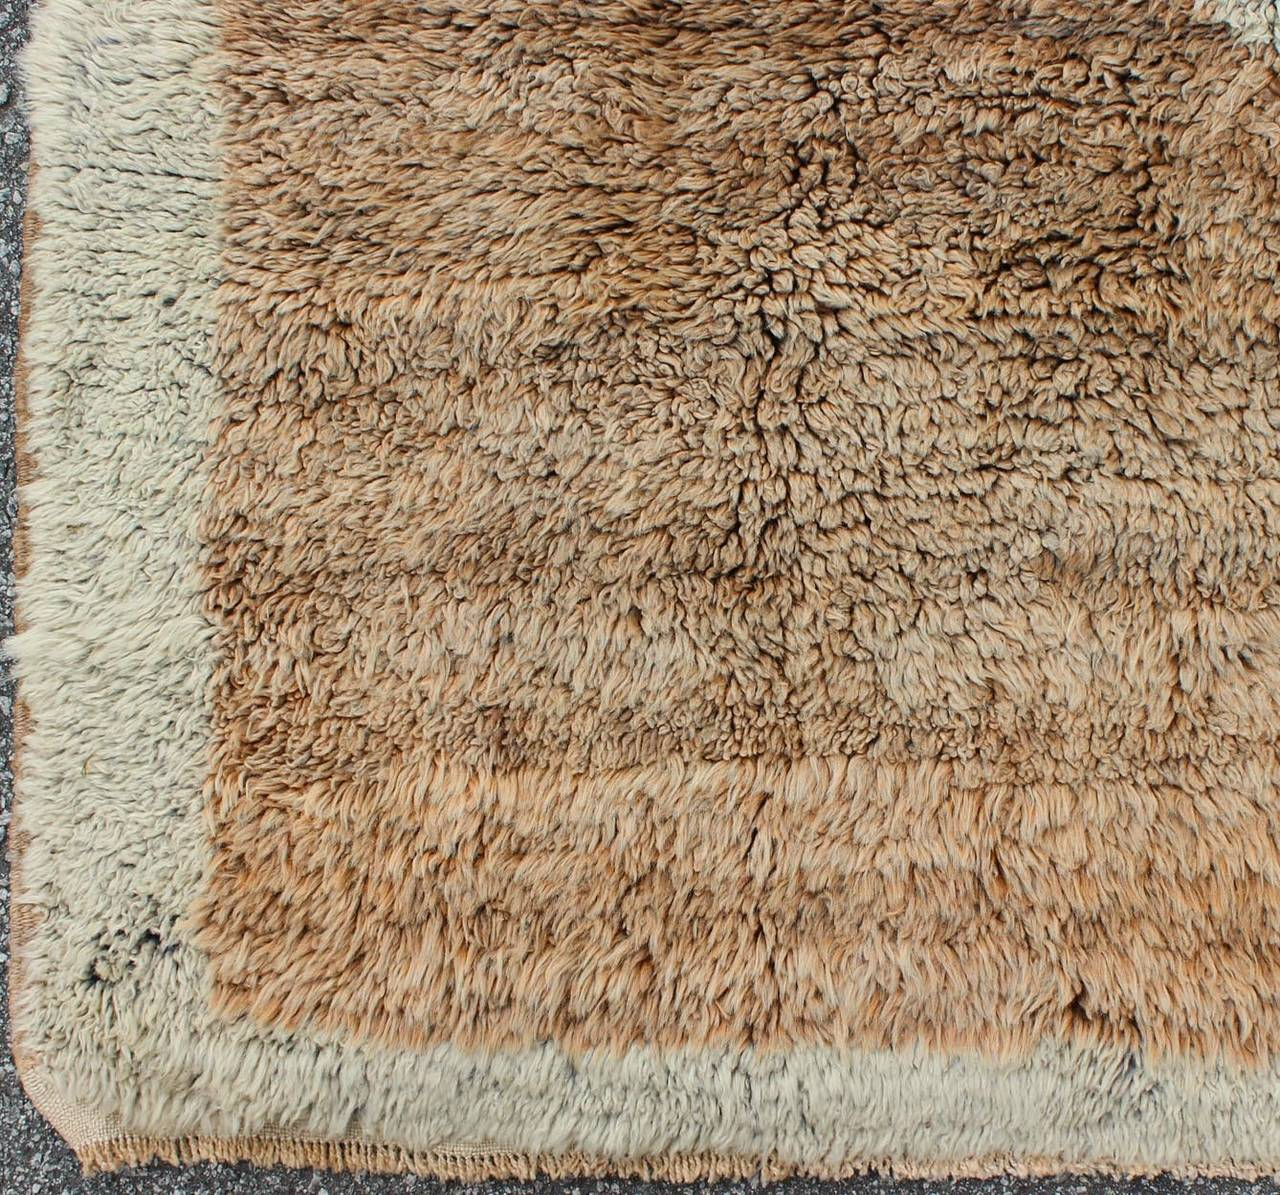 Original antique Tulu rugs are some of the most beautiful textile creations in the entire world. They are soft, usually have vibrant colors and are very shiny. They can be identified by their artistic details and luscious texture. These rugs were